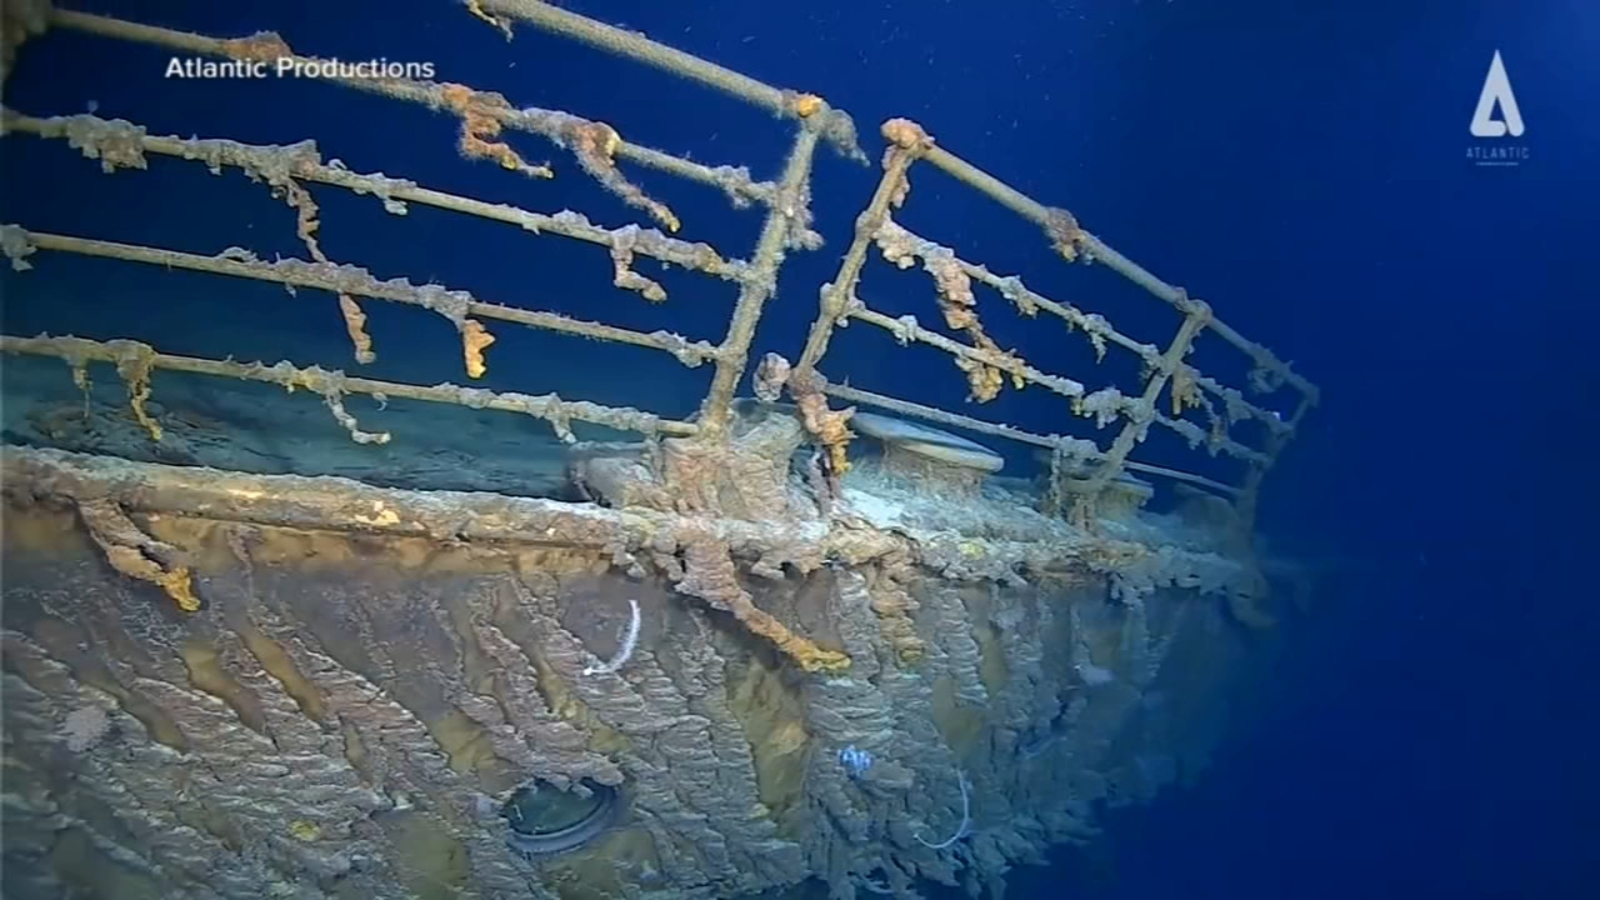 Newly captured video details deterioration of Titanic wreckage